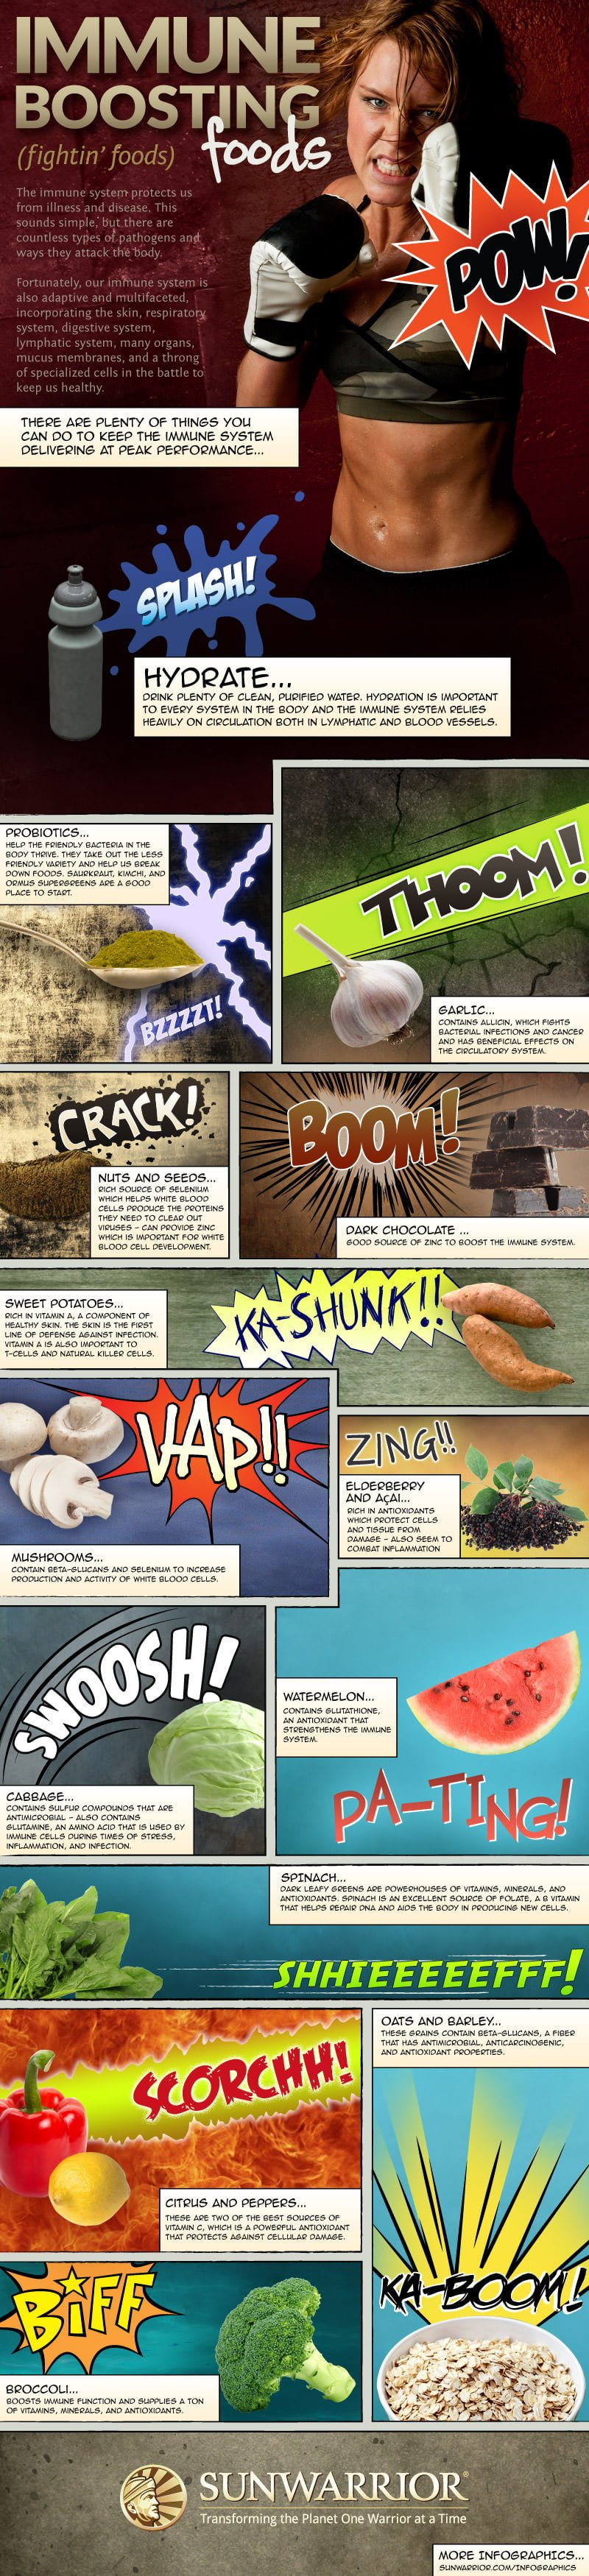 Immune Boosting Foods Infographic